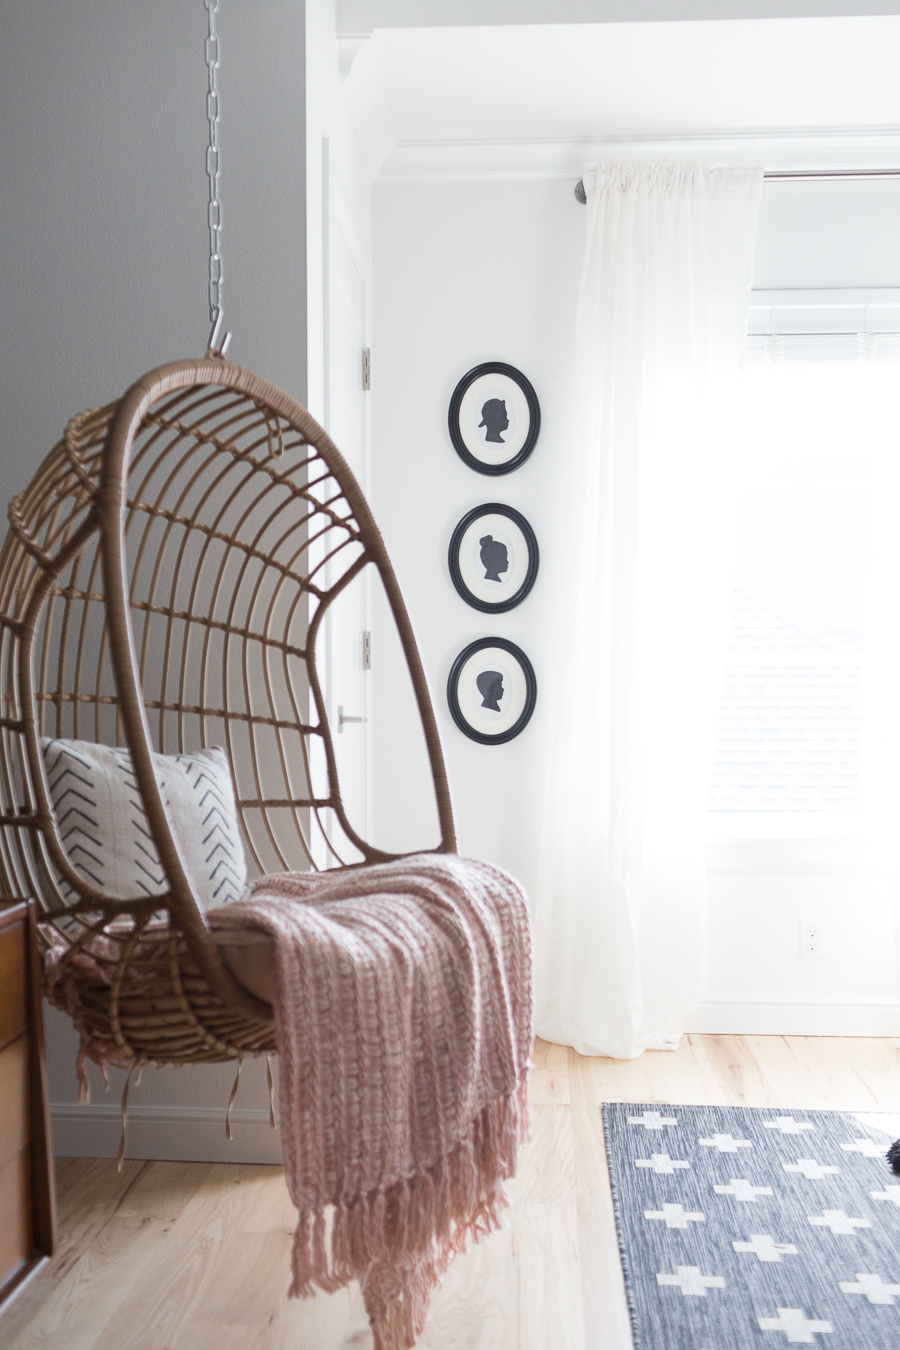 CC and Mike Teen Hangout Room Reveal with Joybird Sectional-3 woven hanging chair and easy $5 DIY silhouette frames on a white painted wall